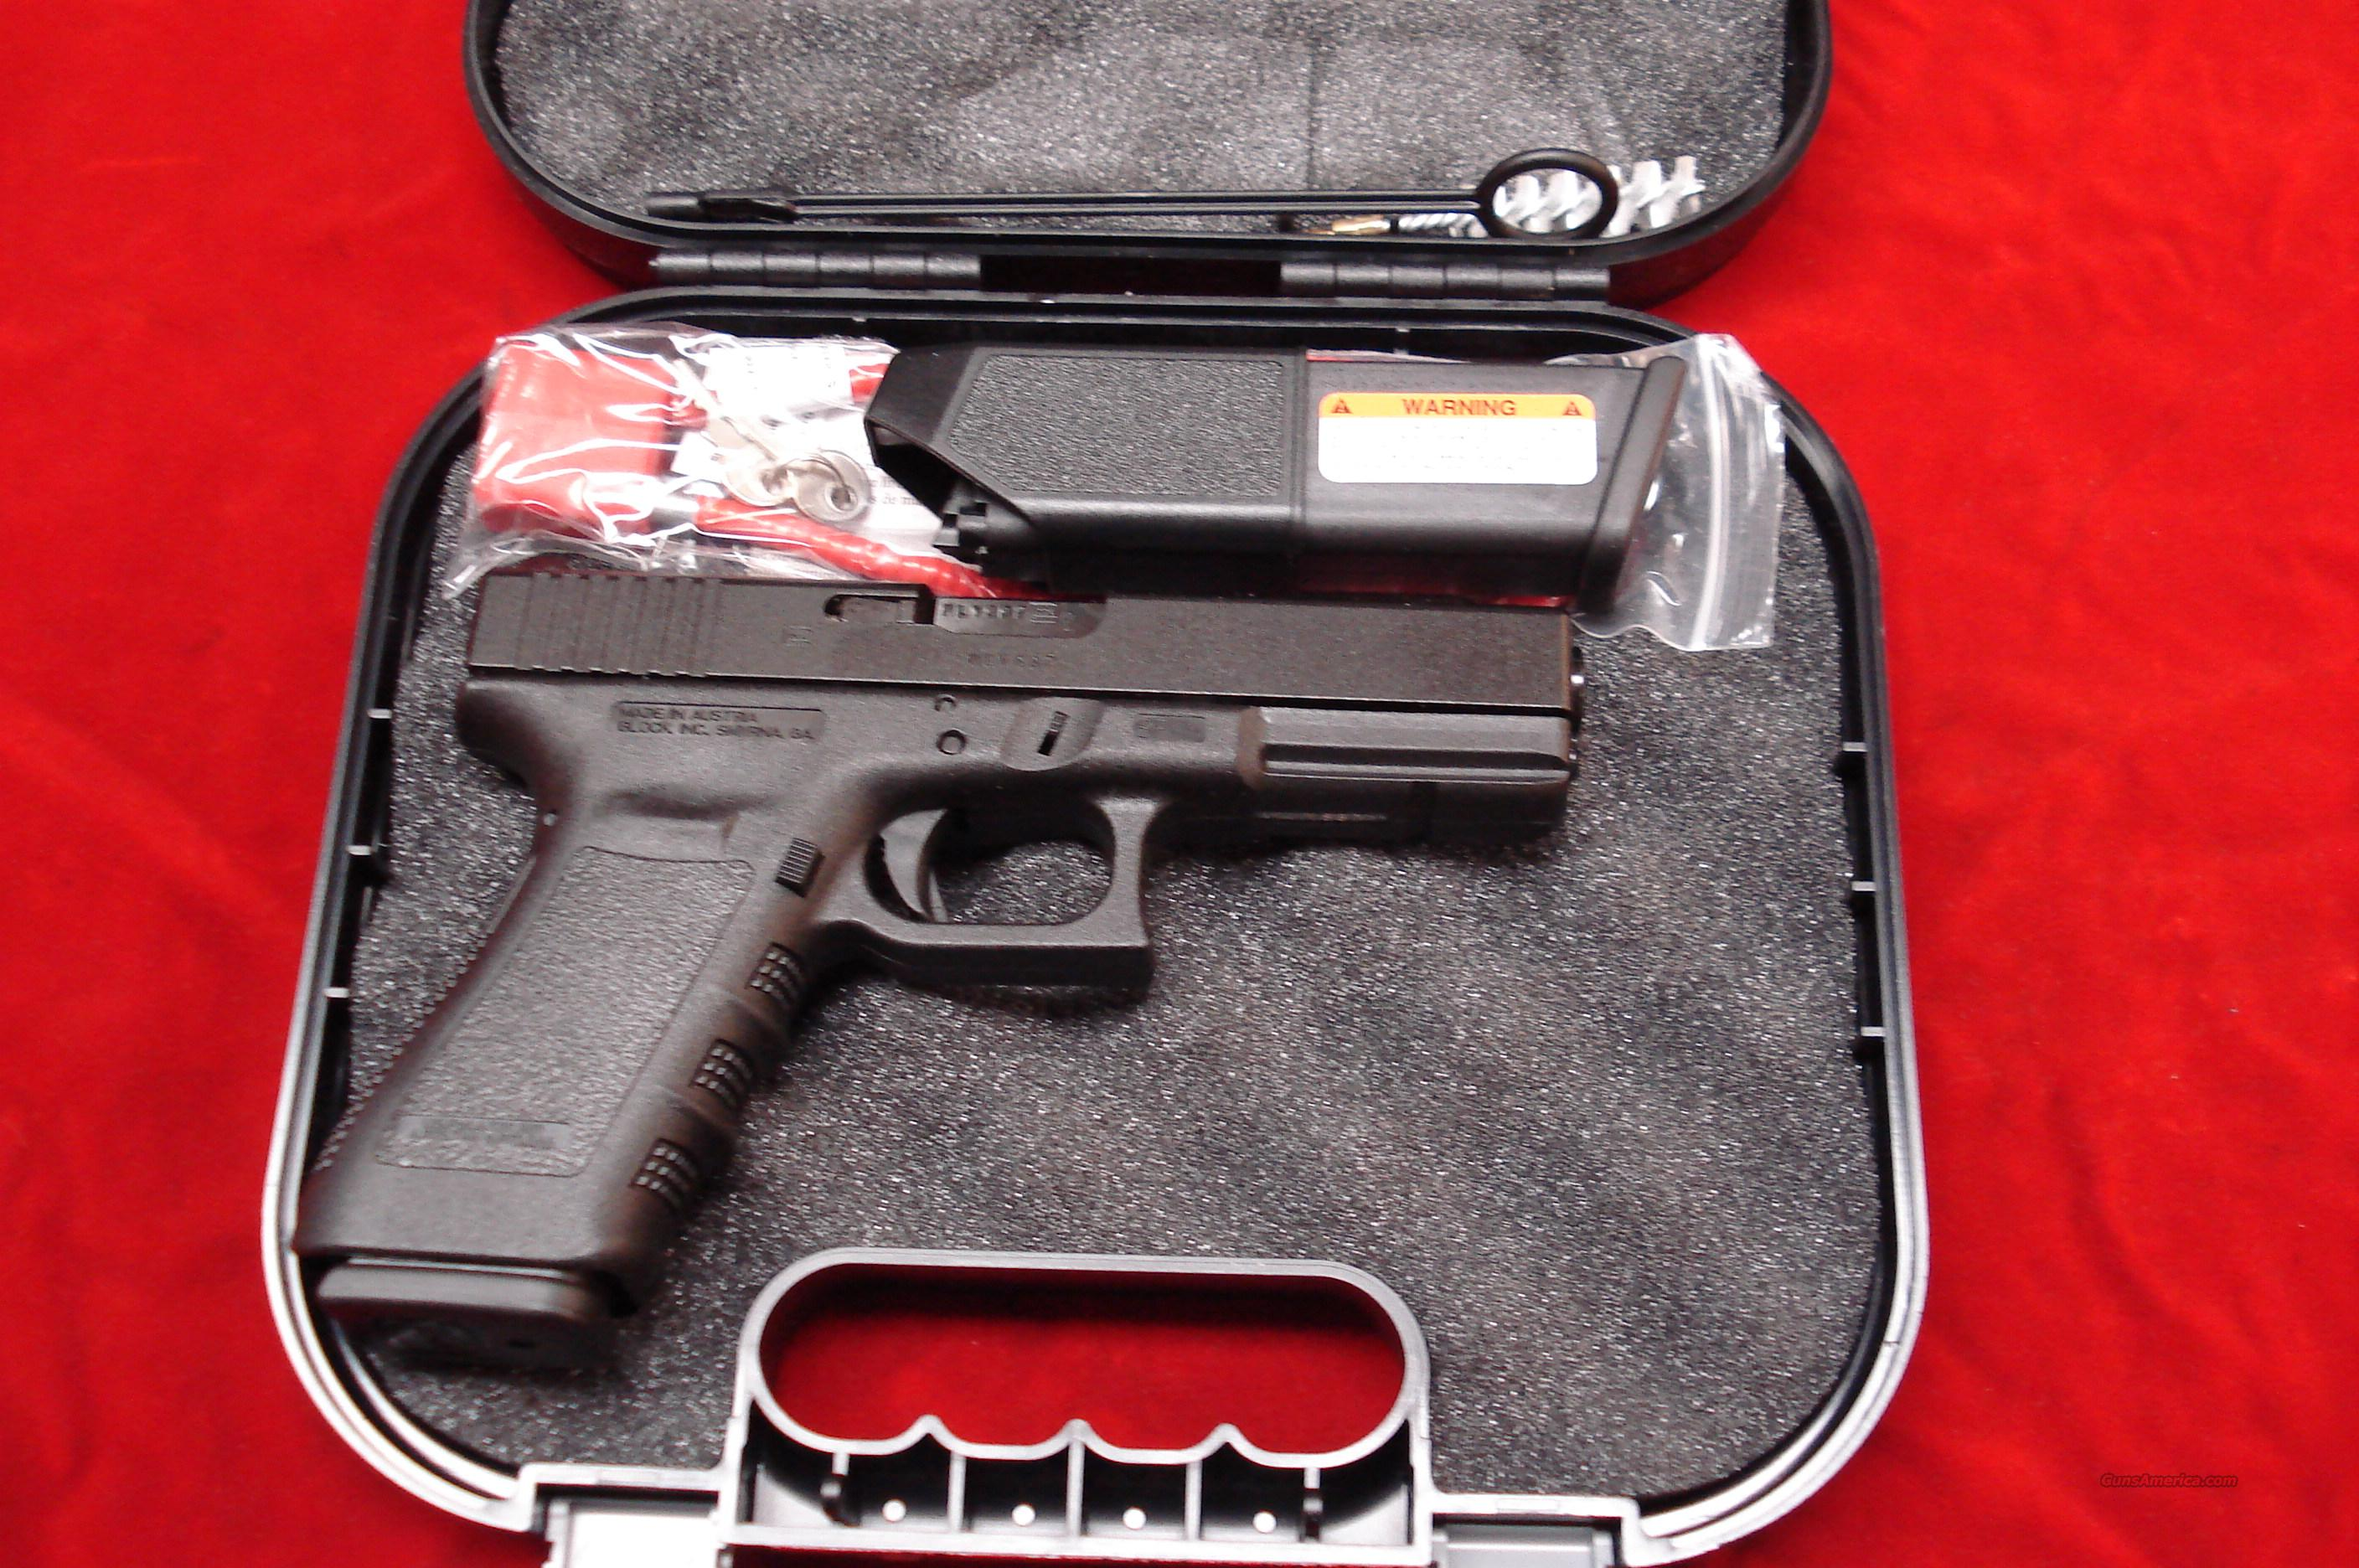 GLOCK MODEL 21SF (SLIM FRAME) 45ACP FACTORY NIGHT SIGHTS HIGH CAP NEW    Guns > Pistols > Glock Pistols > 20/21